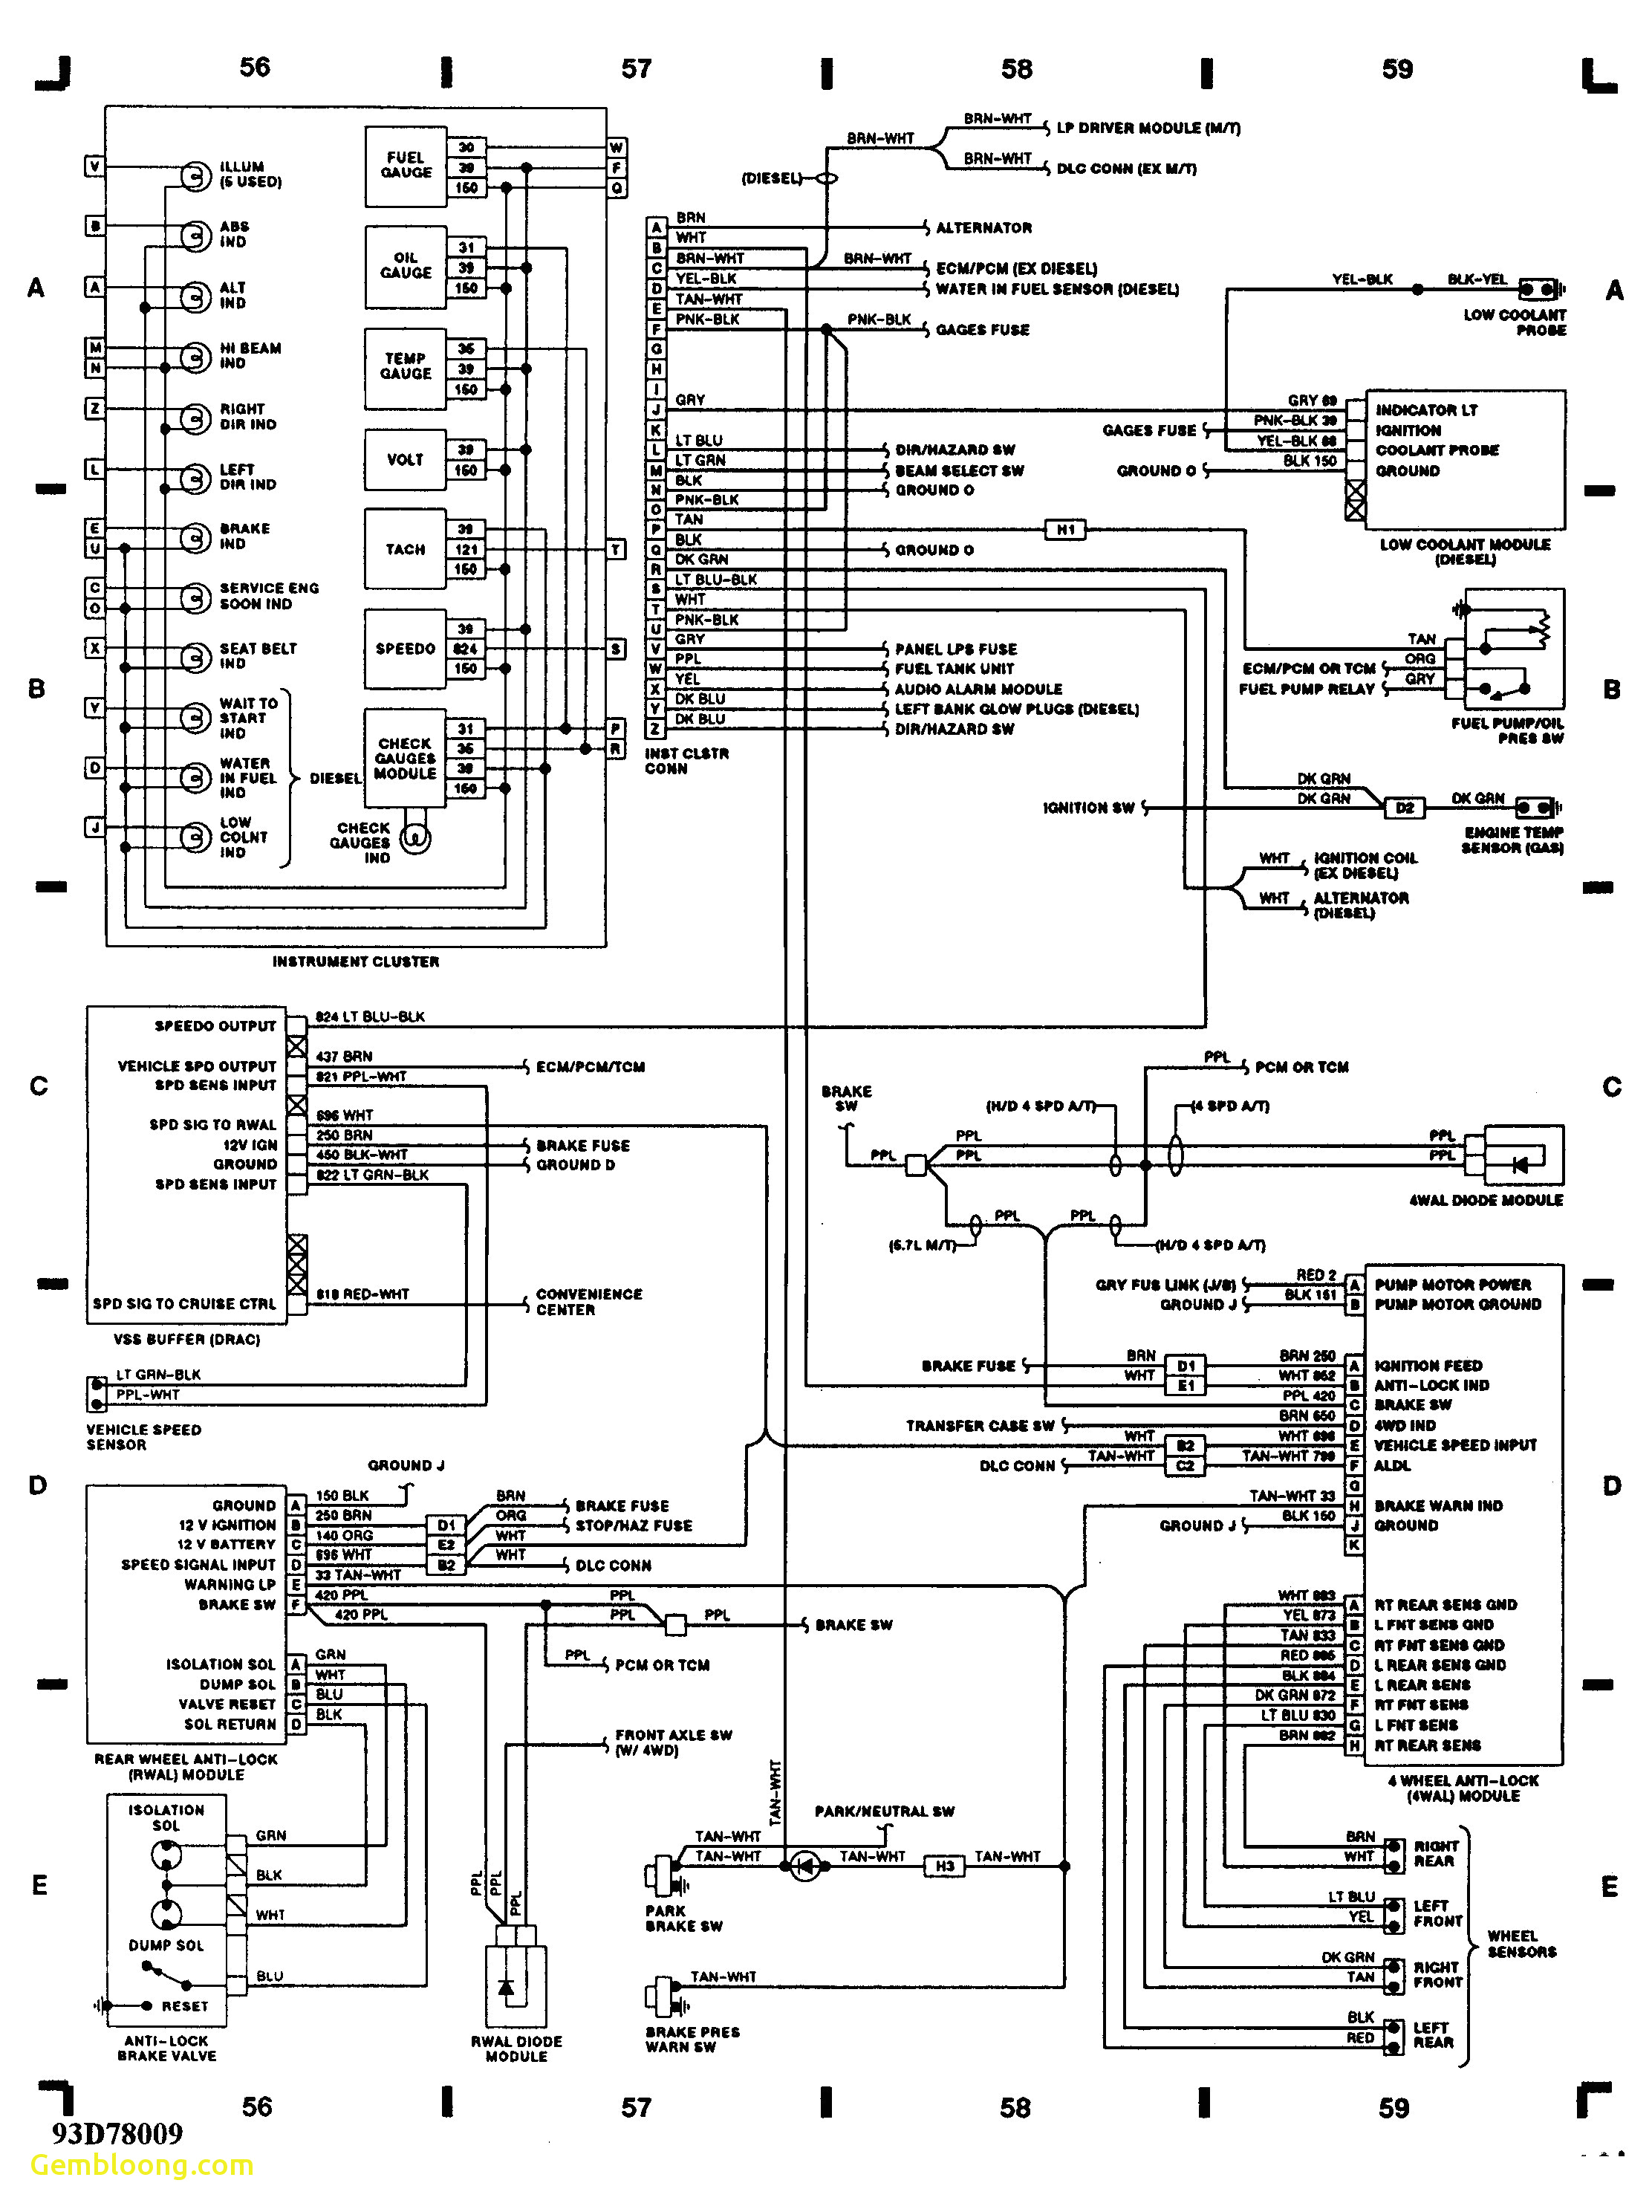 2000 lincoln ls alternator replacement admirable wiring diagram 2000 chevy silverado 2500 wiring library of 2000 lincoln ls alternator replacement jpg